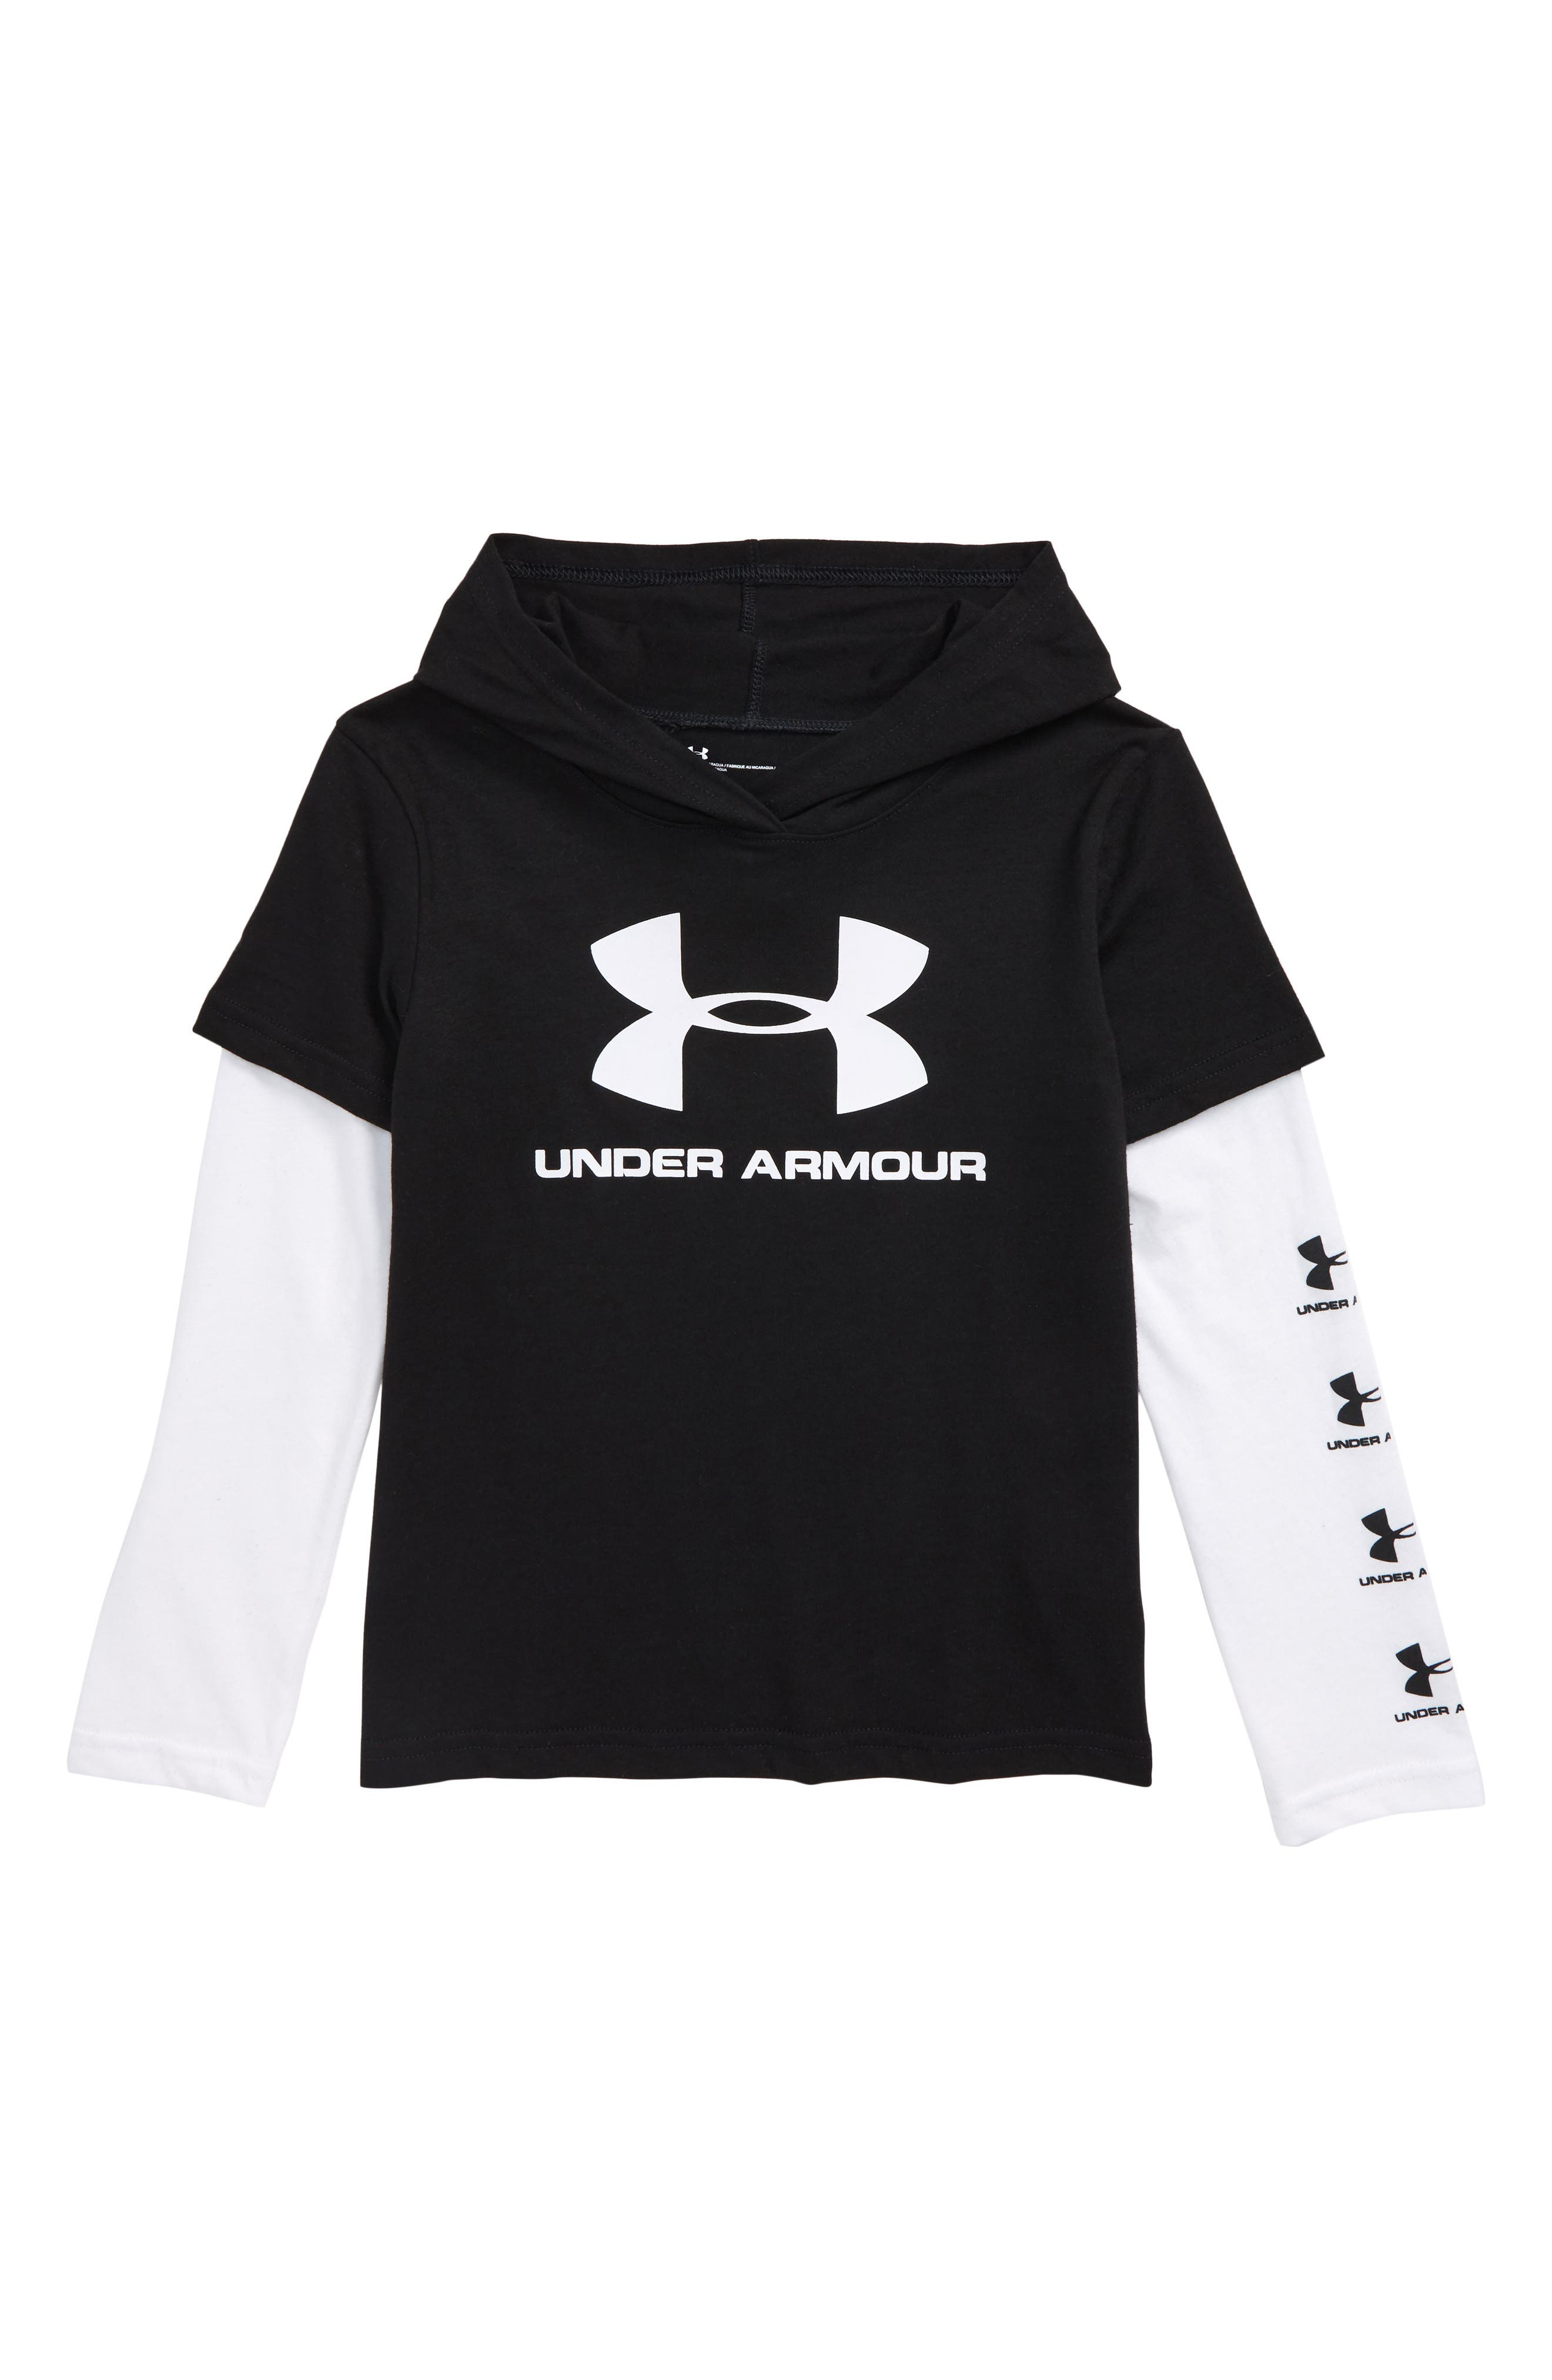 Toddler Boys Under Armour Repeat Hooded Slider Shirt Size 3T  Black